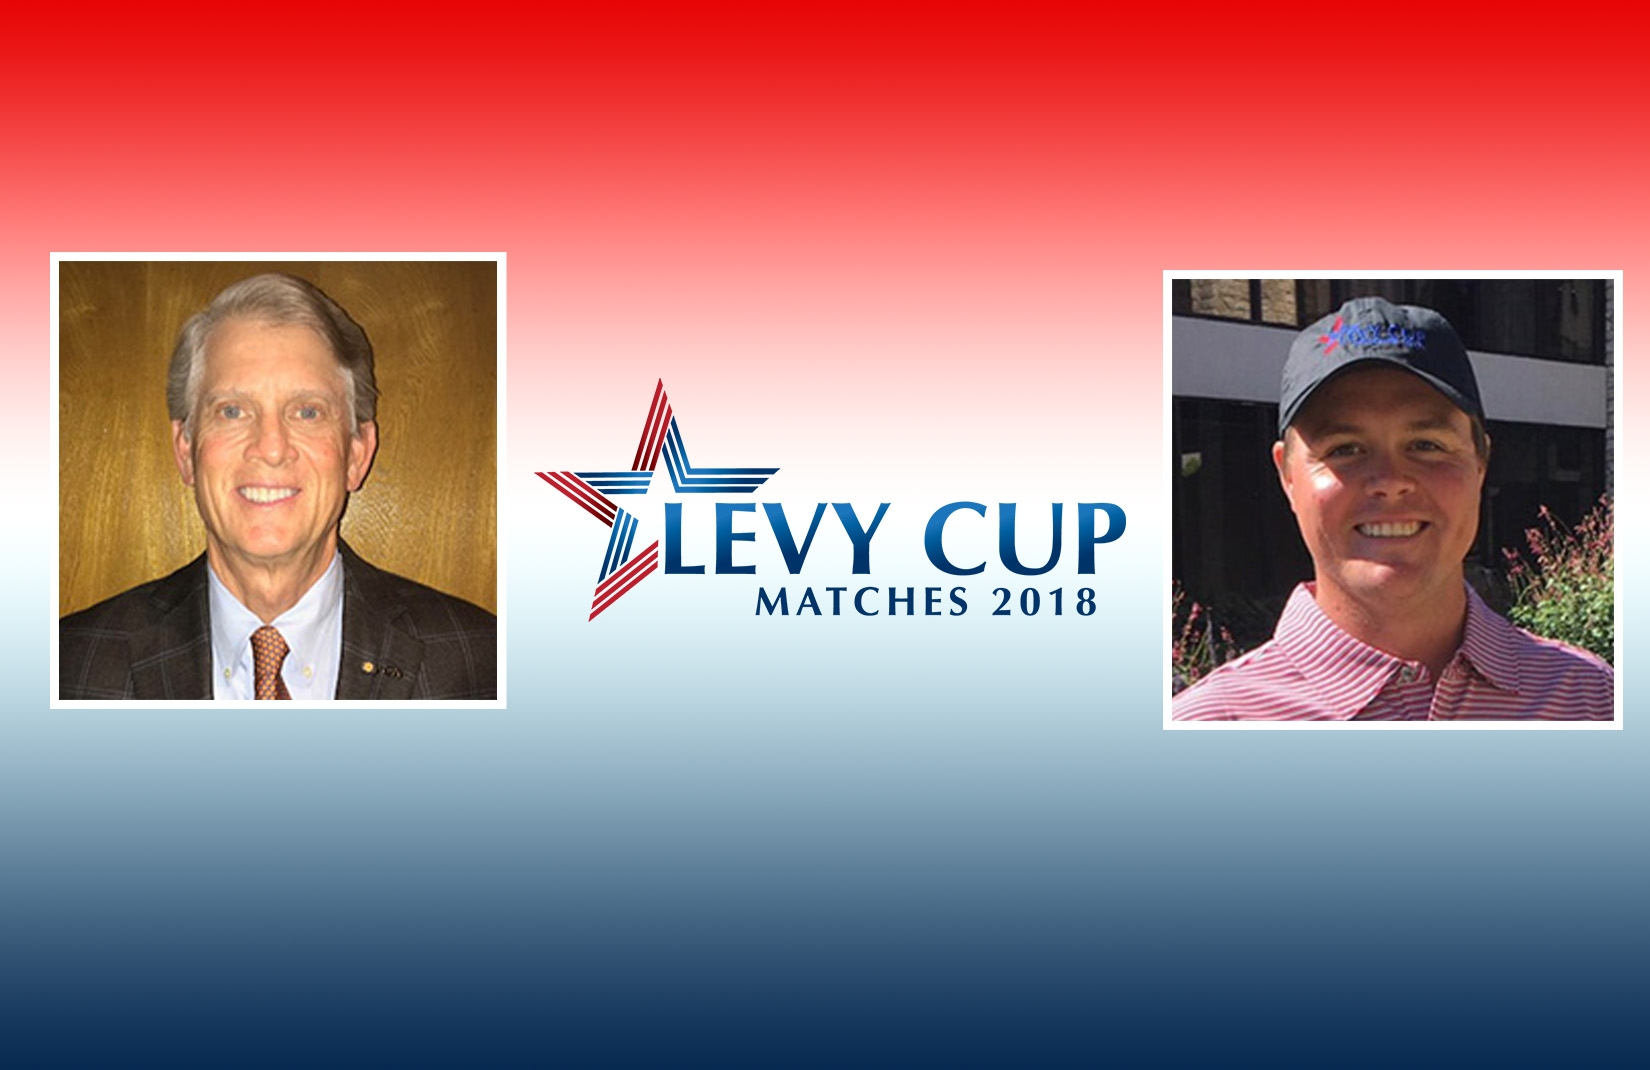 David Pilsner and Ryan Briggs Named 2nd Levy Cup Matches Co-Captains